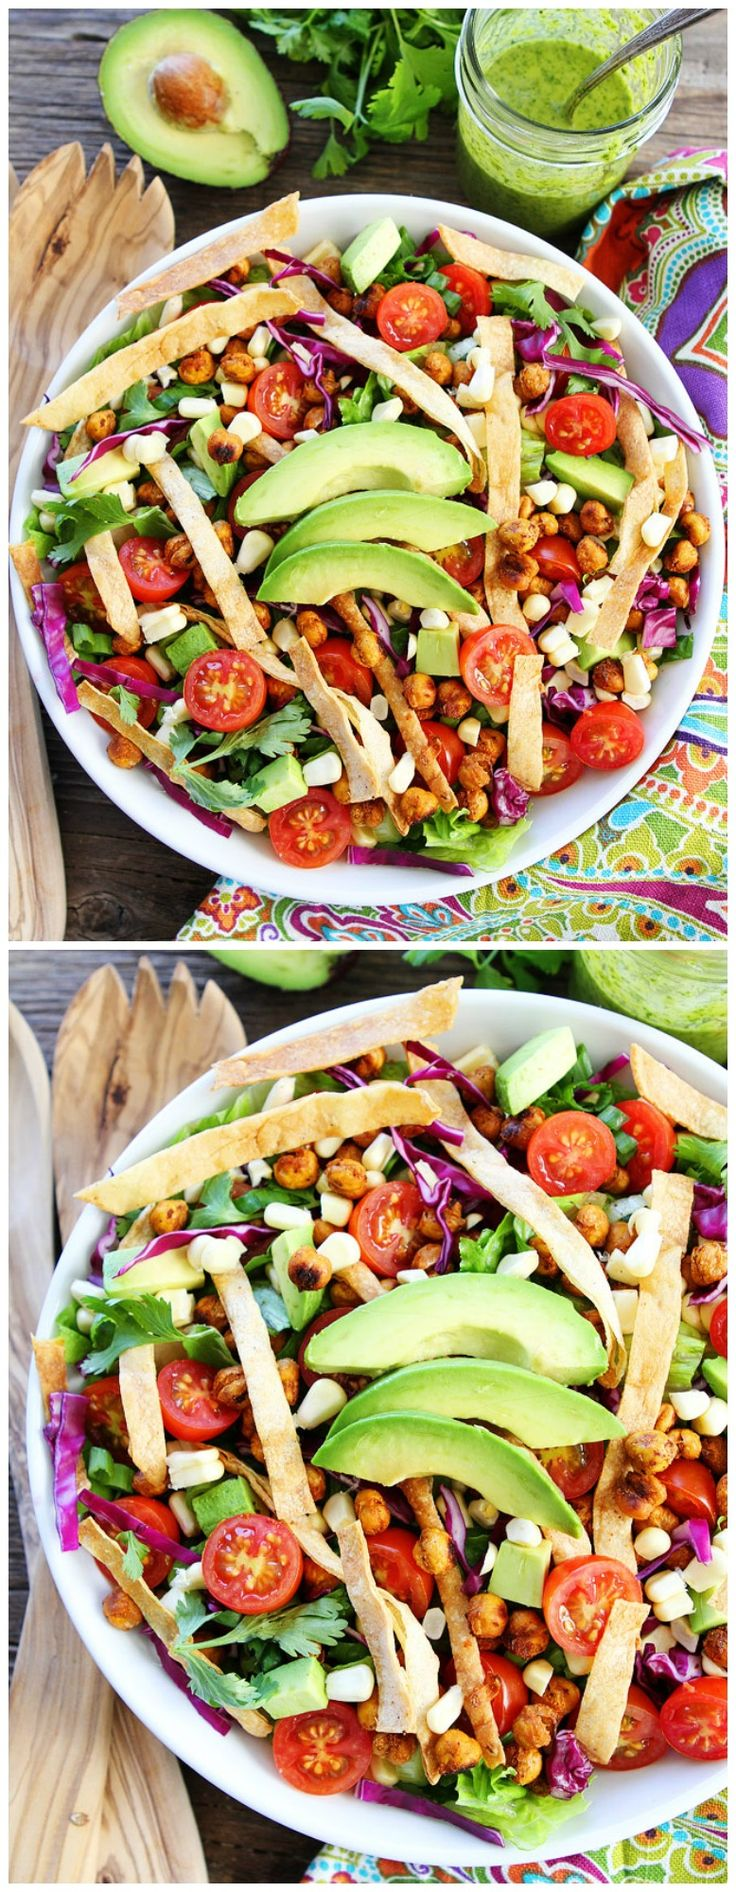 Roasted Chickpea Taco Salad Recipe on twopeasandtheirpod.com This healthy and colorful taco salad is gluten-free and vegan! It is great as a side dish or main dish!